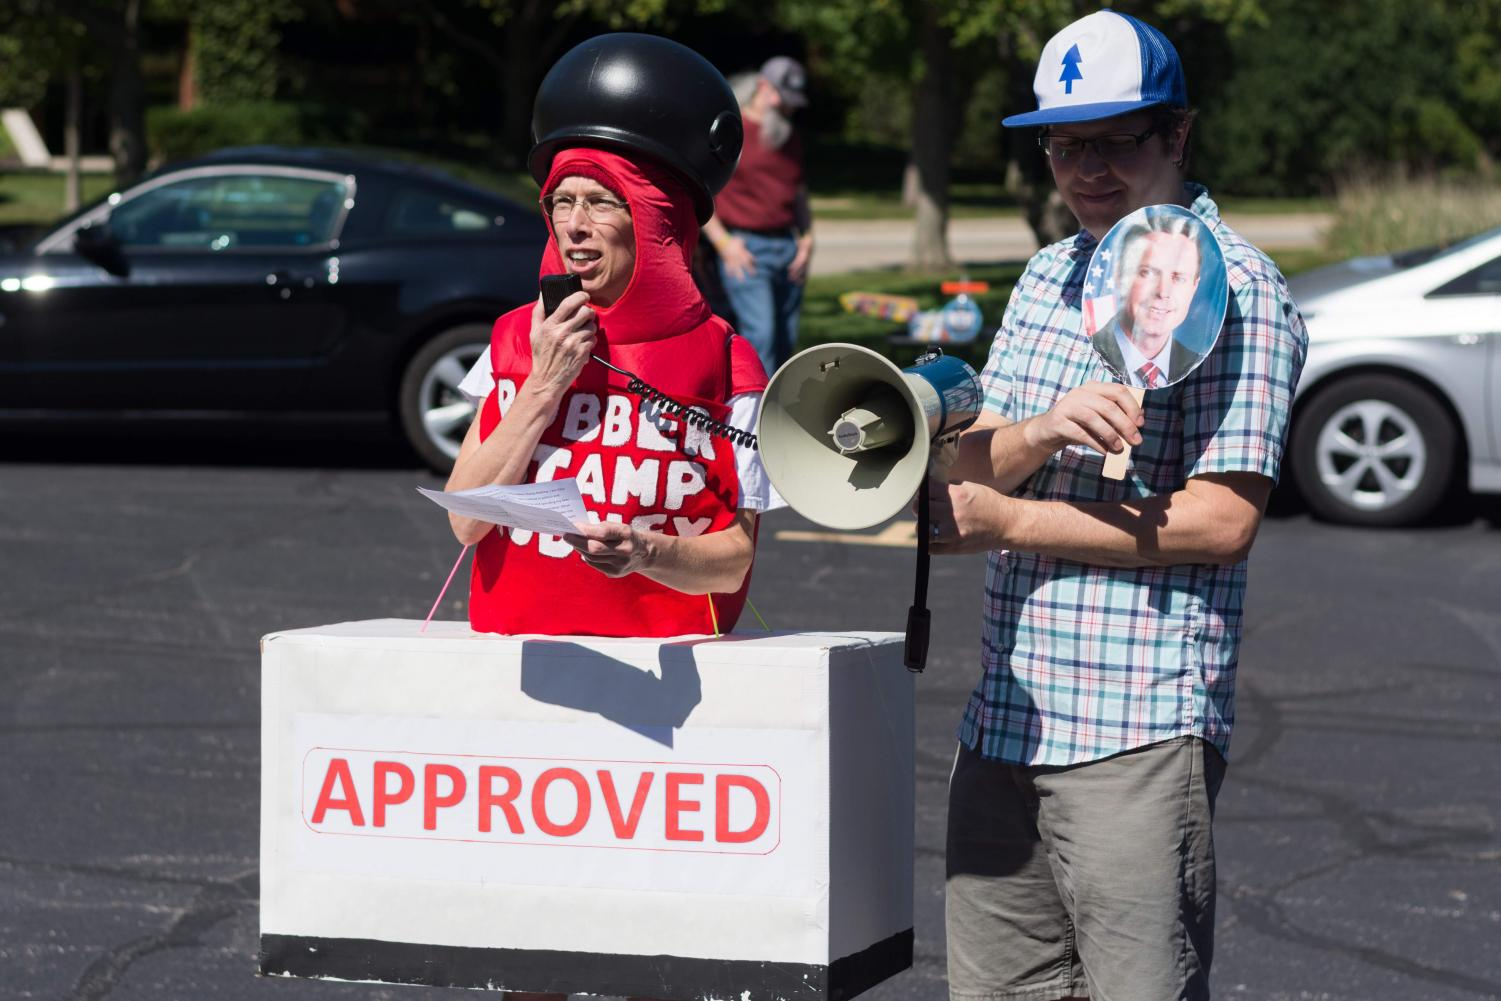 Ellen Leyerle, a Champaign resident, dressed as a rubber stamp to criticize Rep. Rodney Davis' support for President Trump's policies while she spoke at a rally outside Davis' Champaign office.